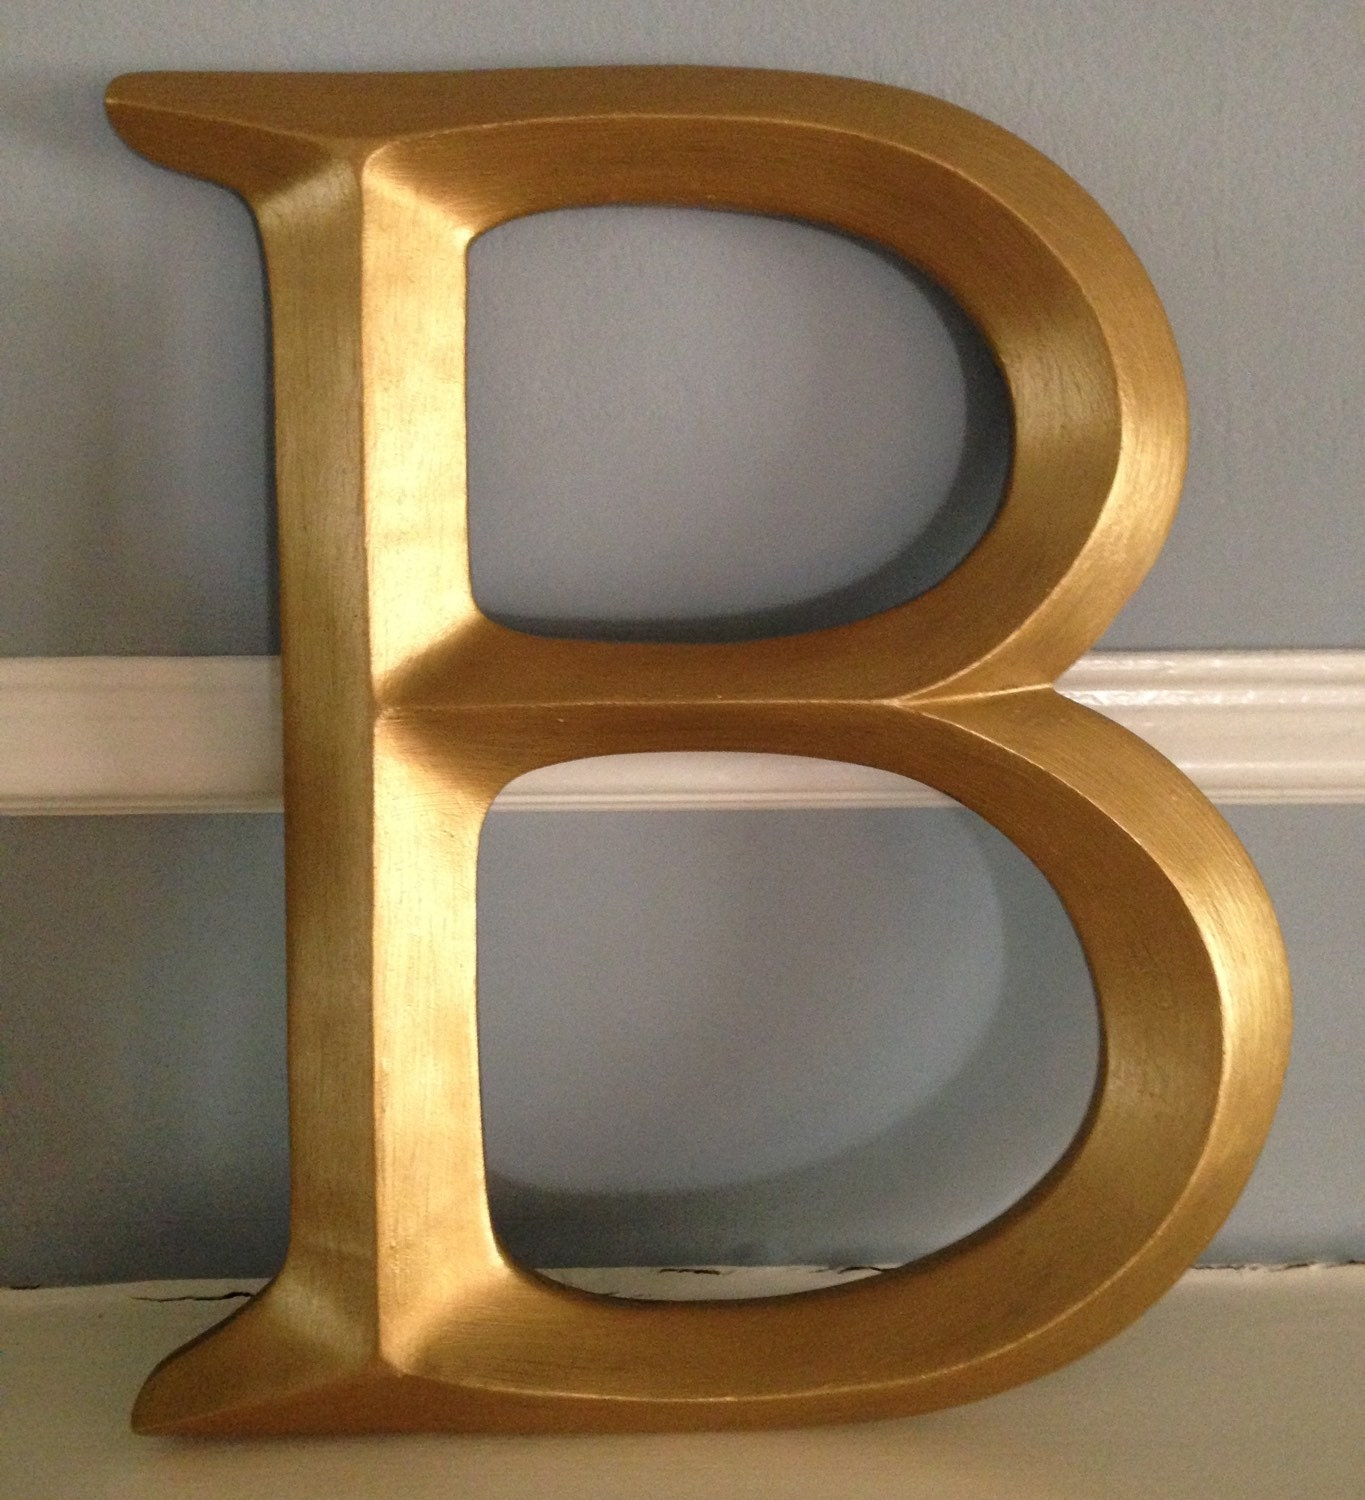 large single letter initials monogram letter b gold letters large wall letter picture wall letter any color